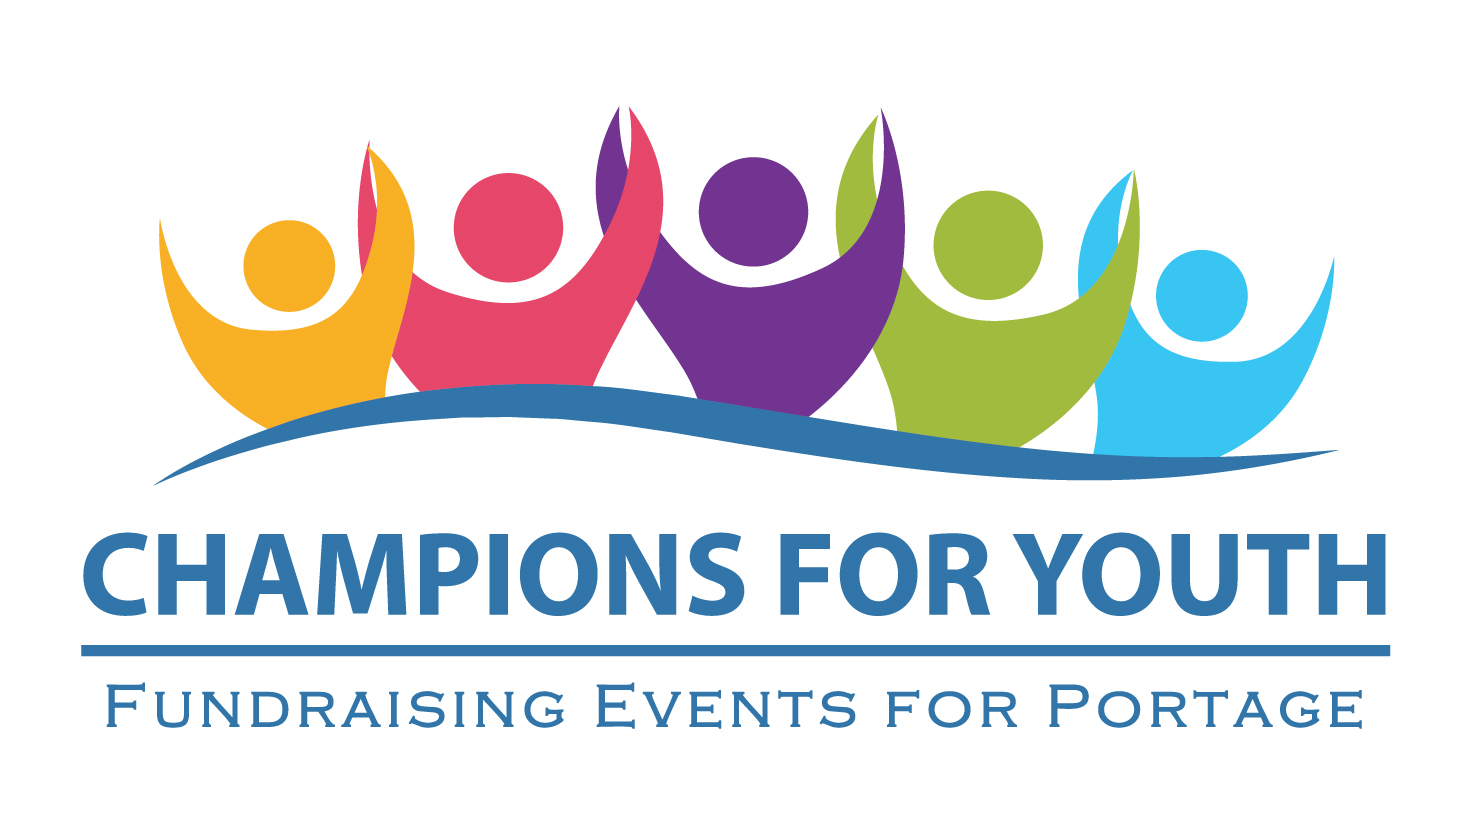 Champions for Youth